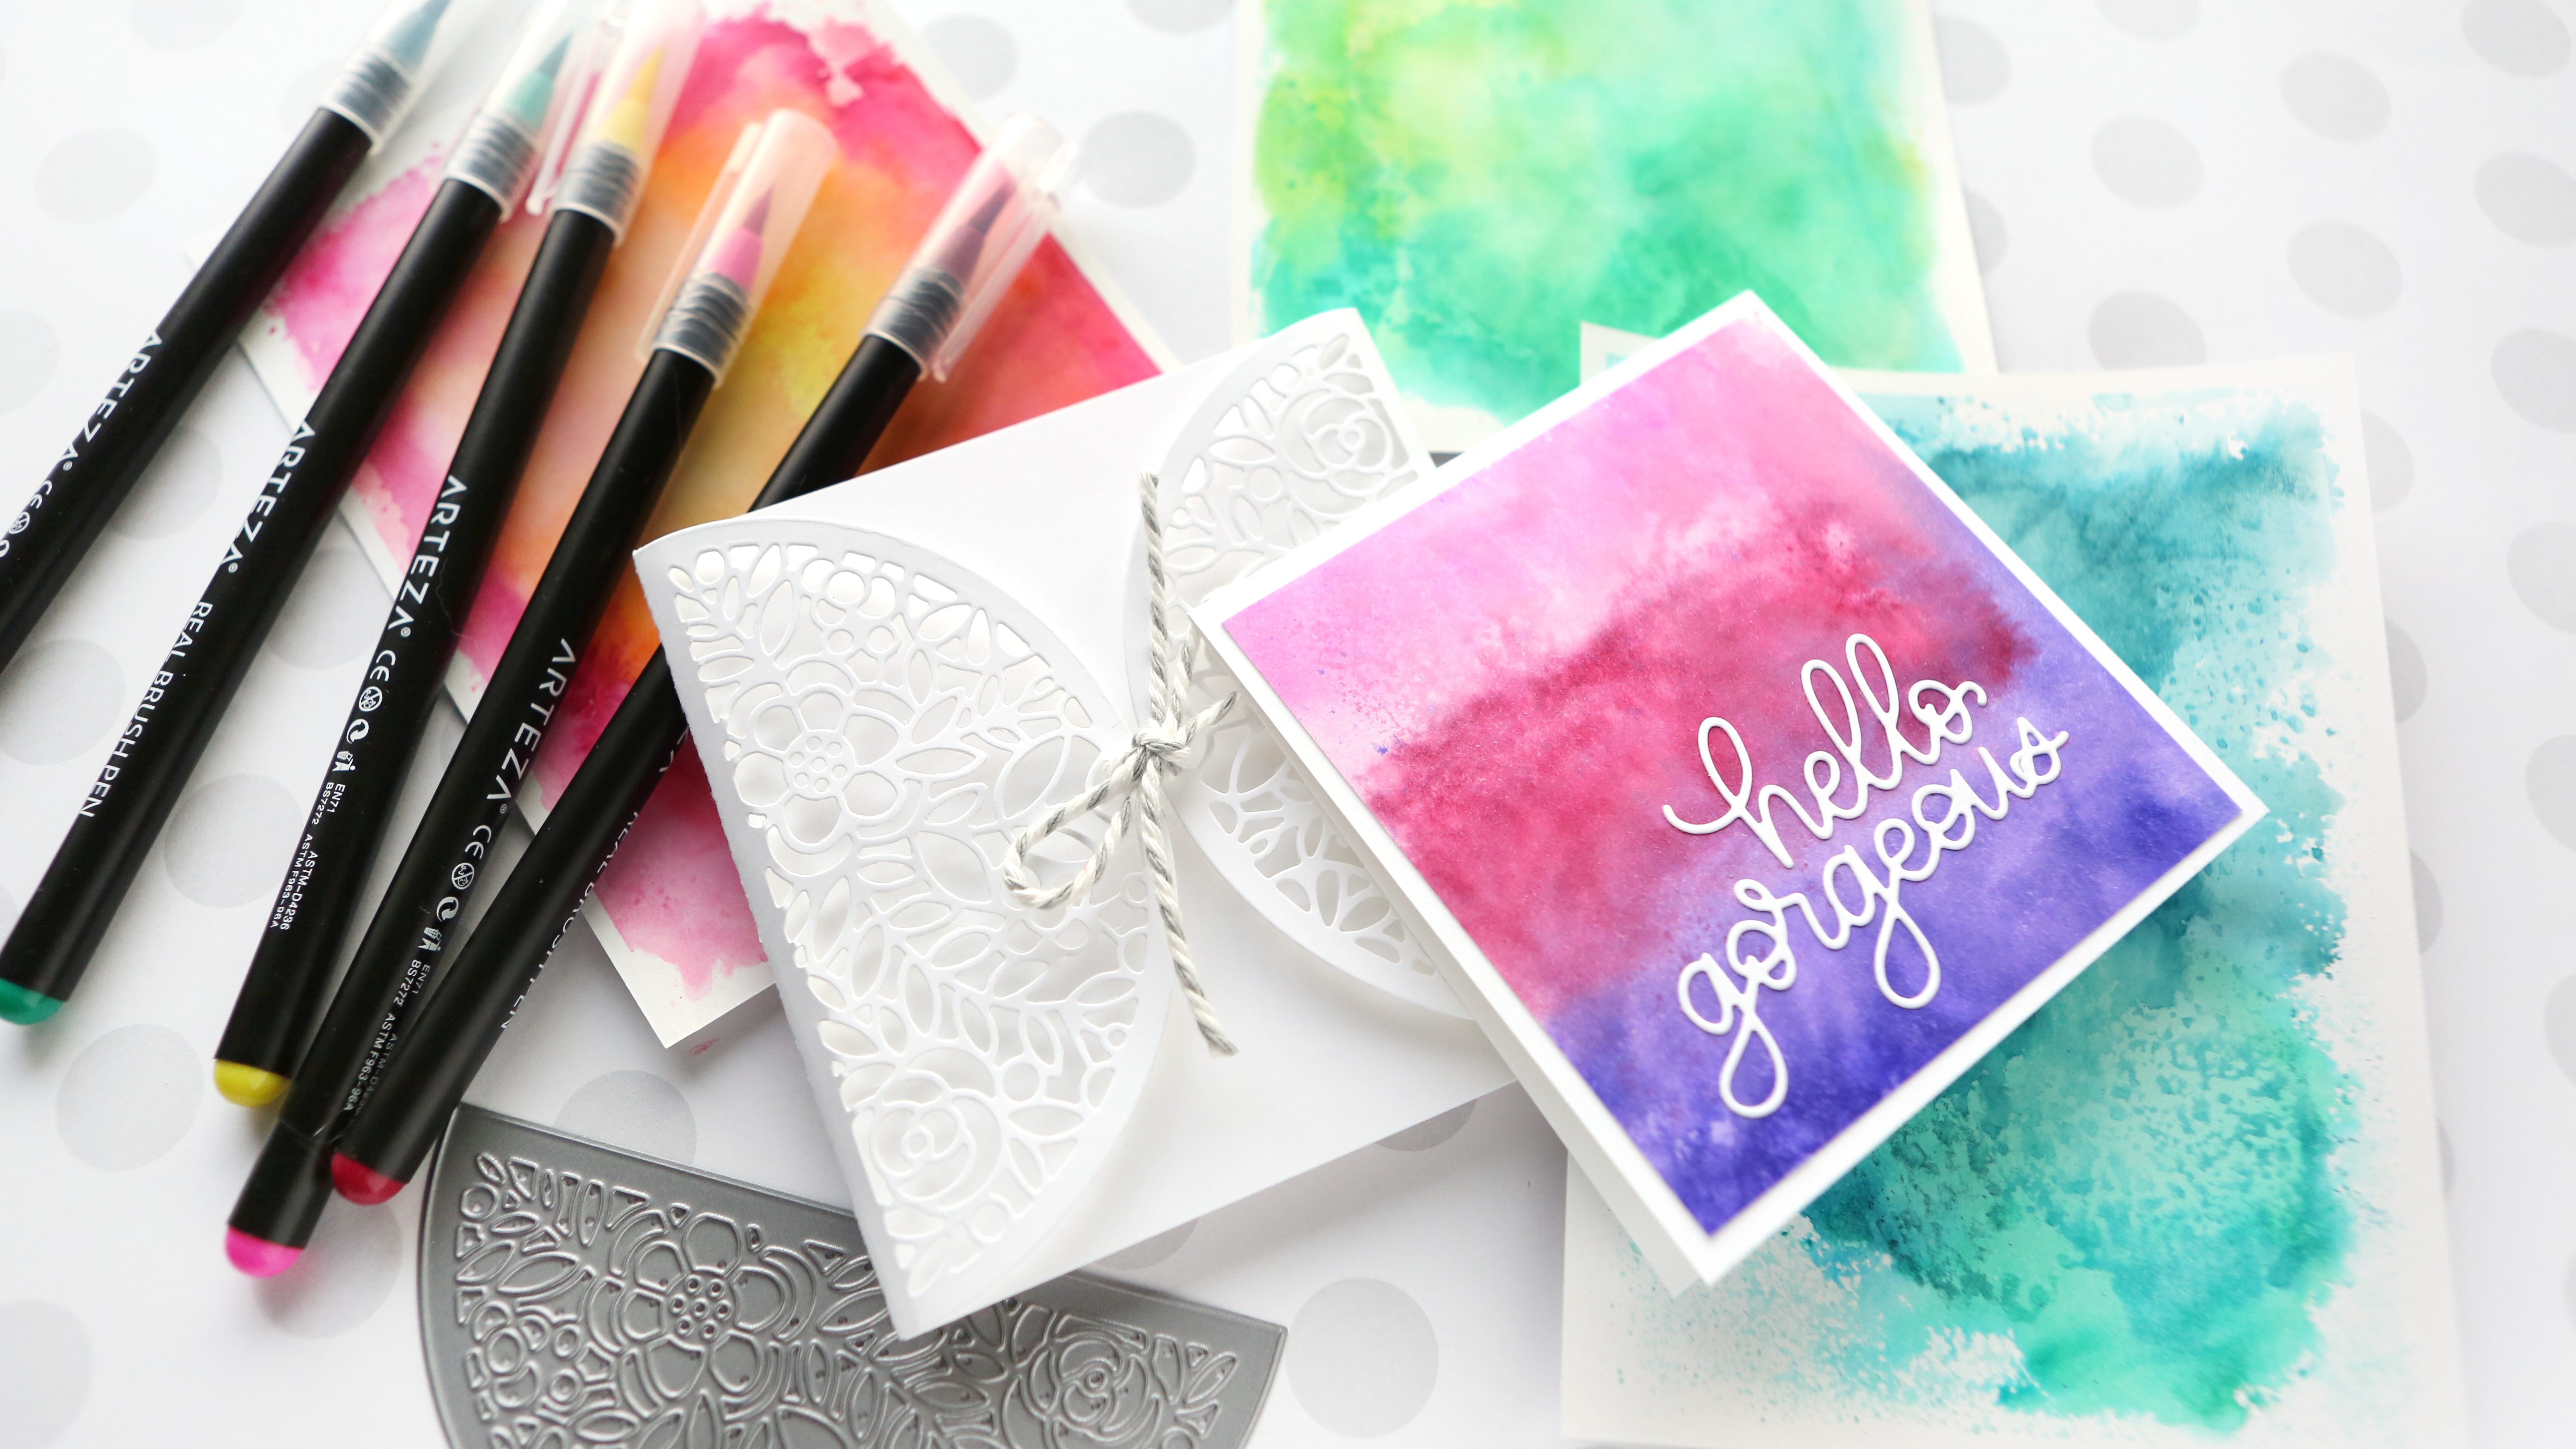 Arteza Address Easy Watercolor Backgrounds With Watercolor Markers